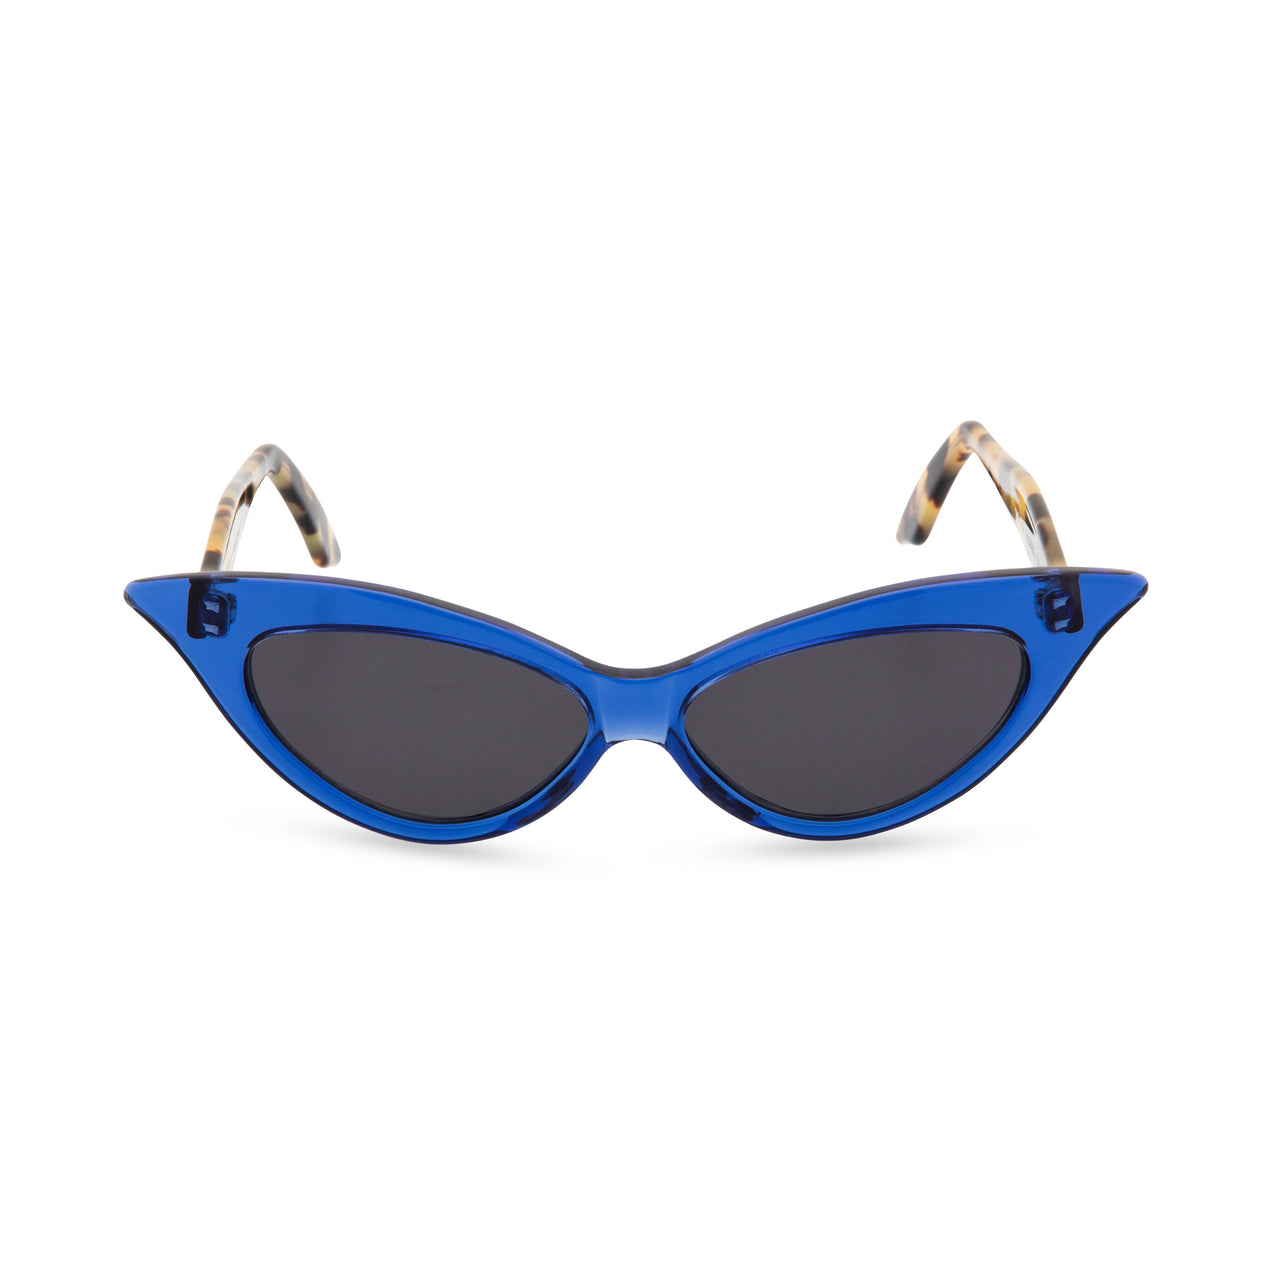 Juliette - Sunglasses Blue Crystal